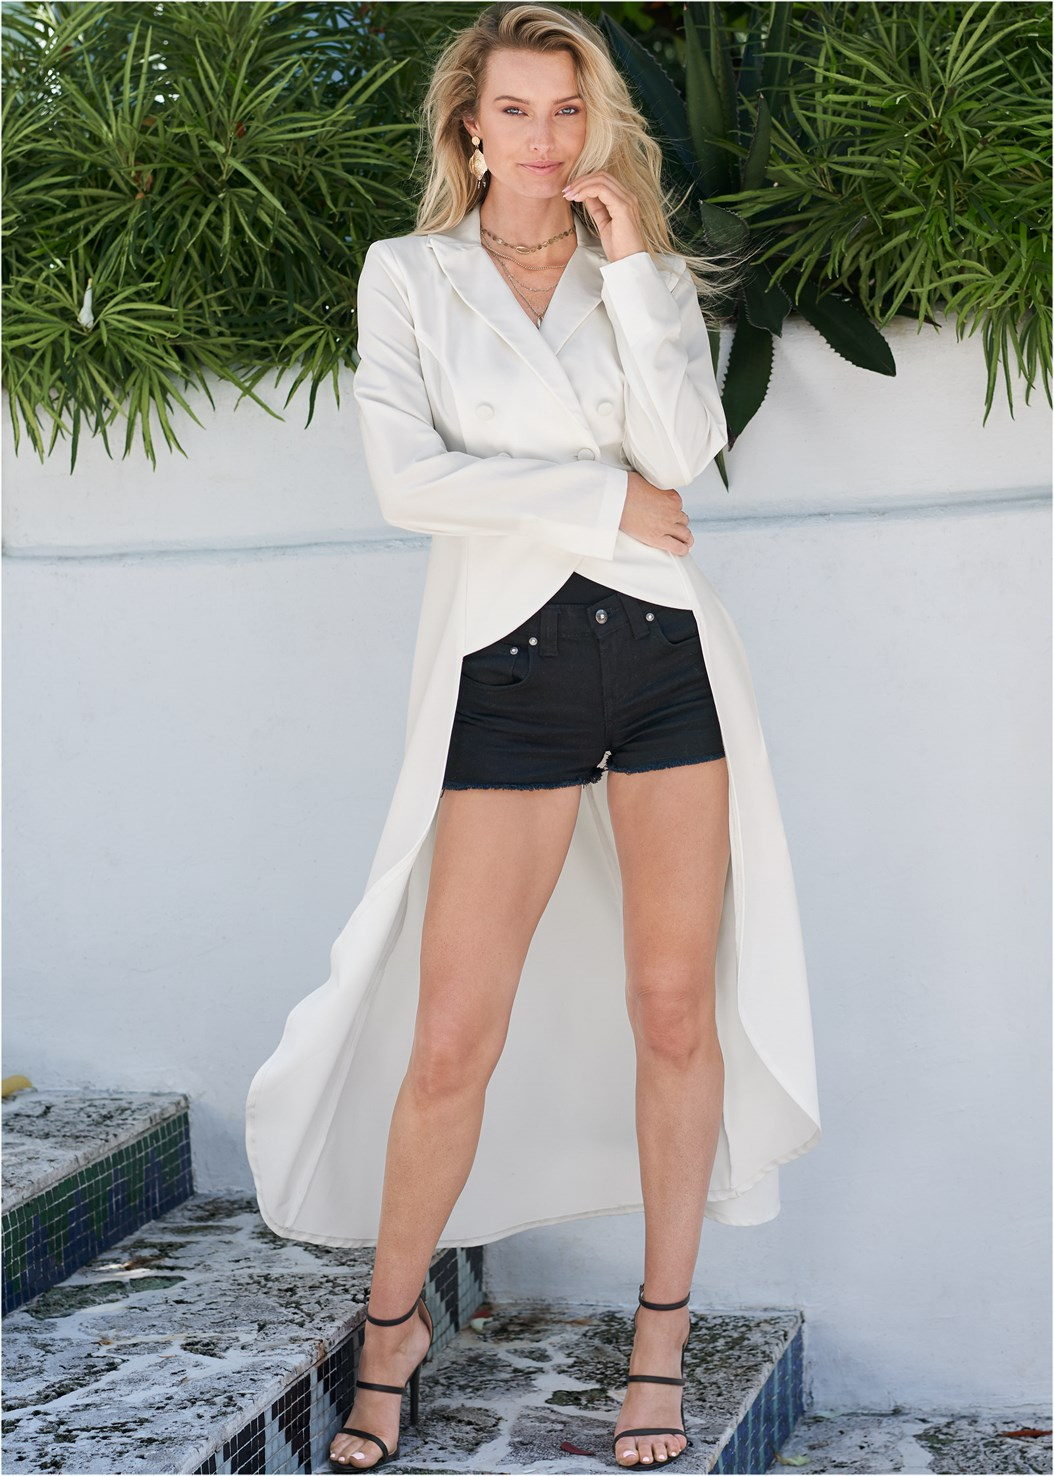 High Low Double Breasted Blazer,Frayed Cut Off Jean Shorts,Triangle Hem Jeans,High Heel Strappy Sandals,Beaded Heels,Hoop Detail Earrings,Tassel Hoop Earring,Shell Layered Necklace